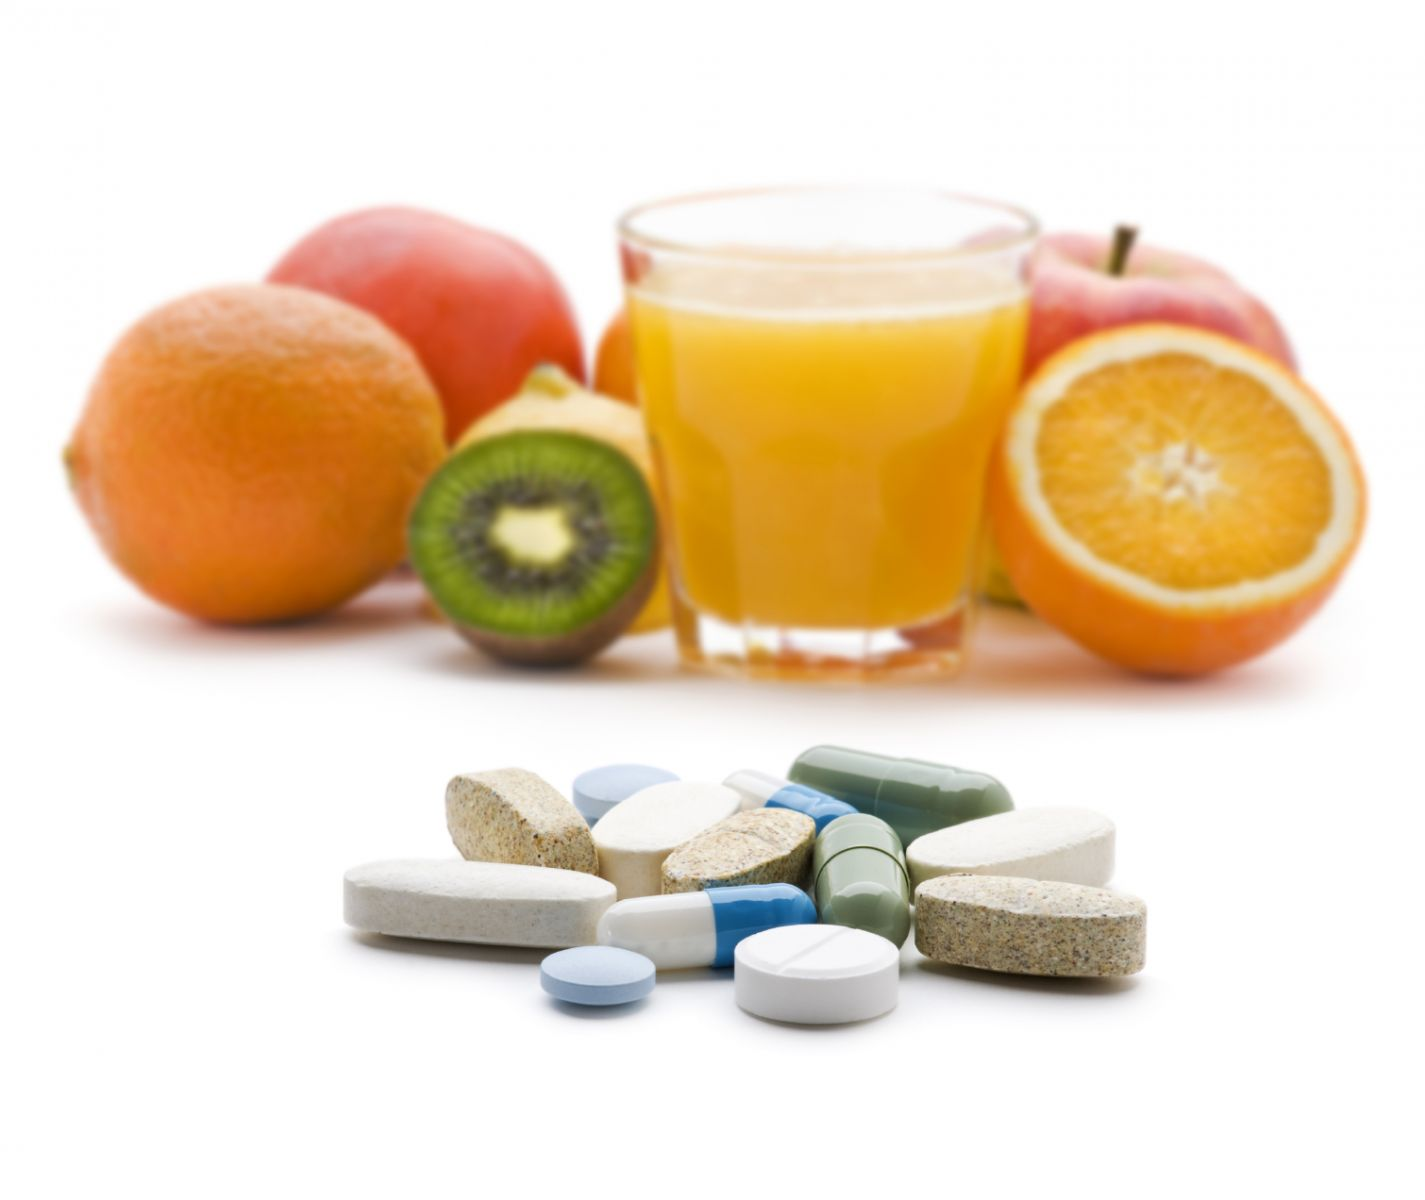 Best source of vitamins? Your plate, not your medicine cabinet